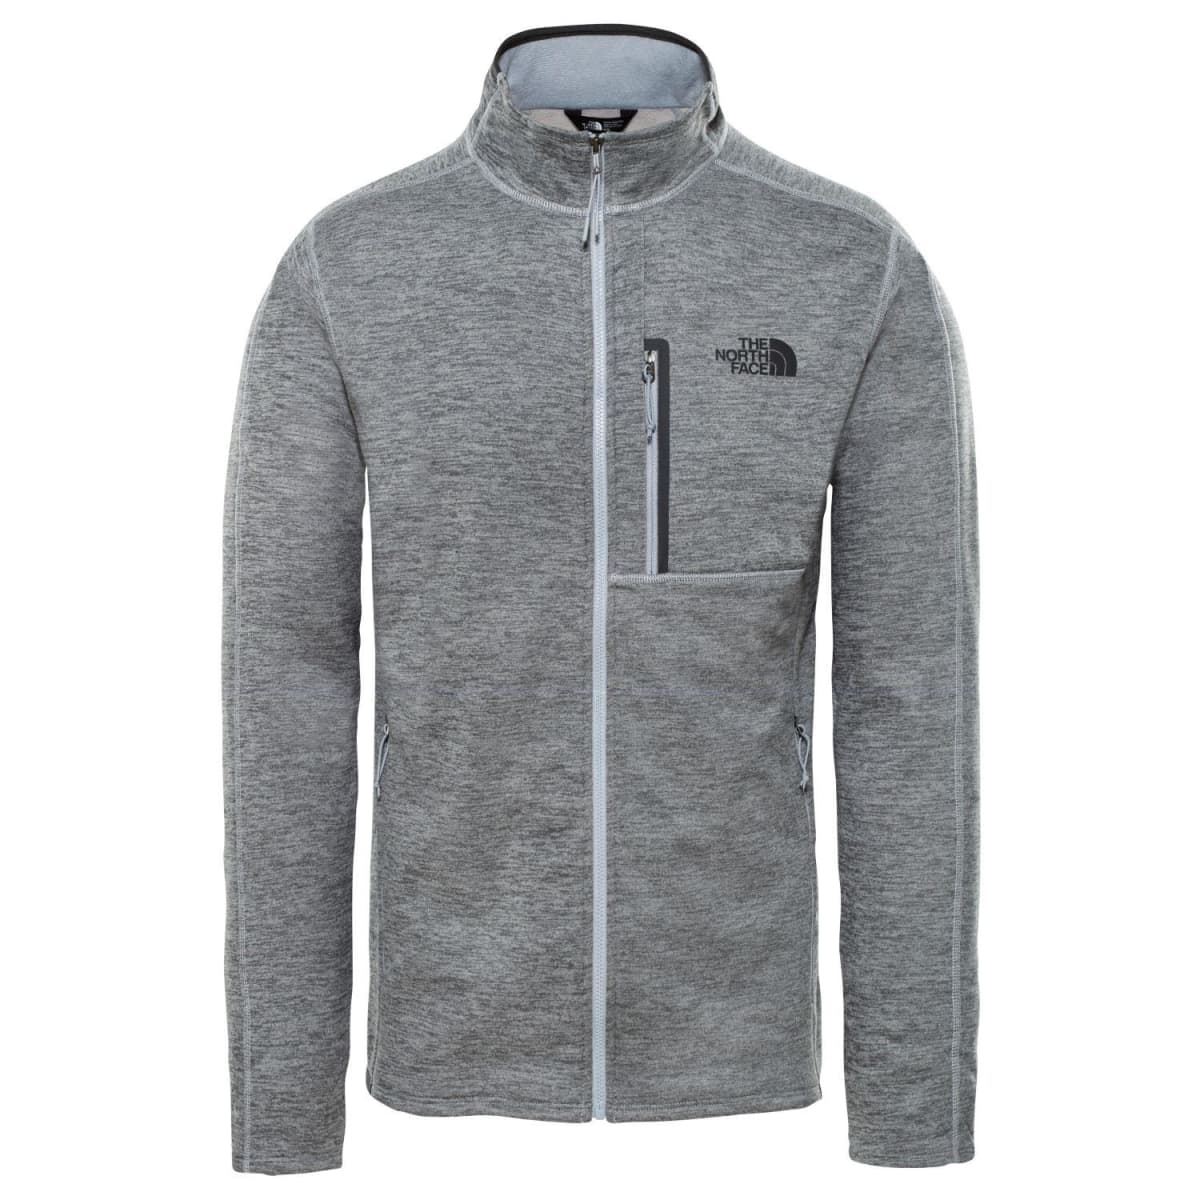 1f47eeaf6 North Face Products | Sportsmans Warehouse